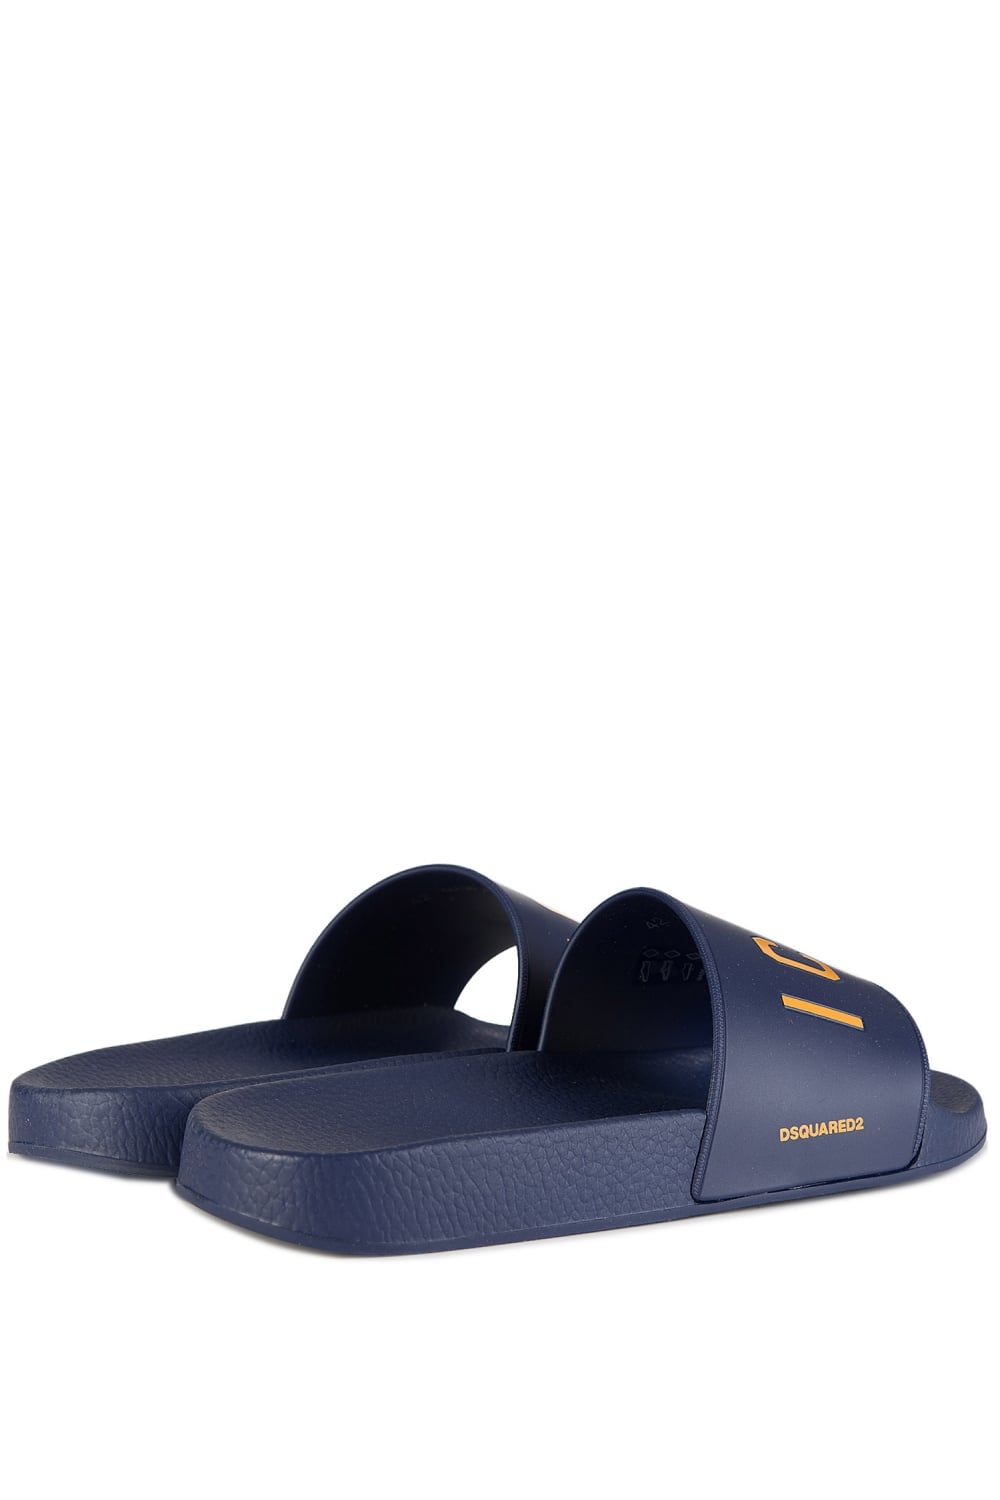 Dsquared2 Icon sliders PfQEqR